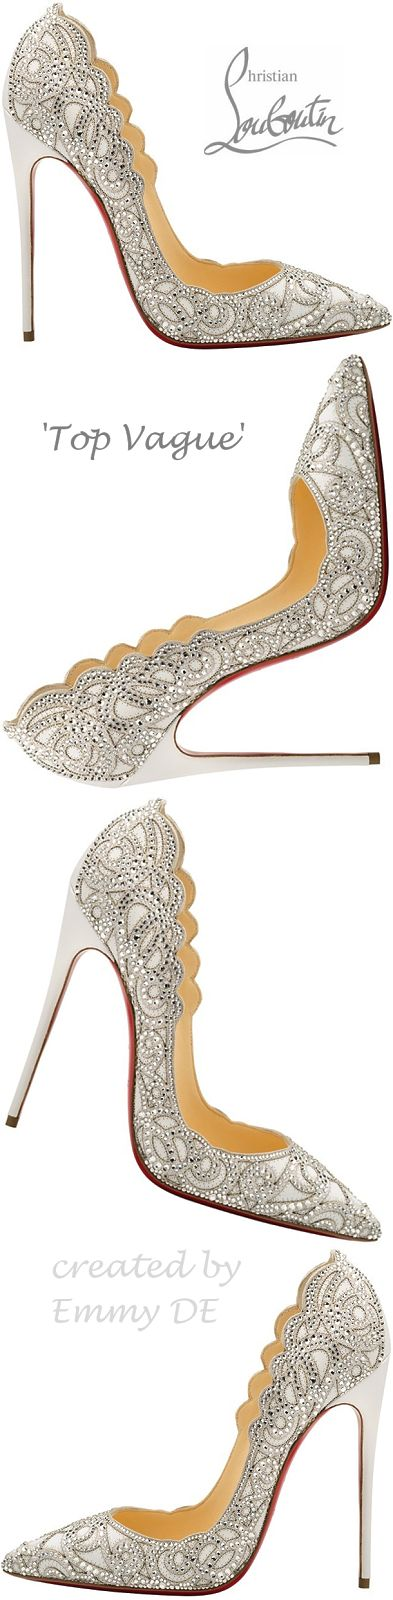 Christian Louboutin 'Top Vague' Spring 2015 -by Emmy DE *